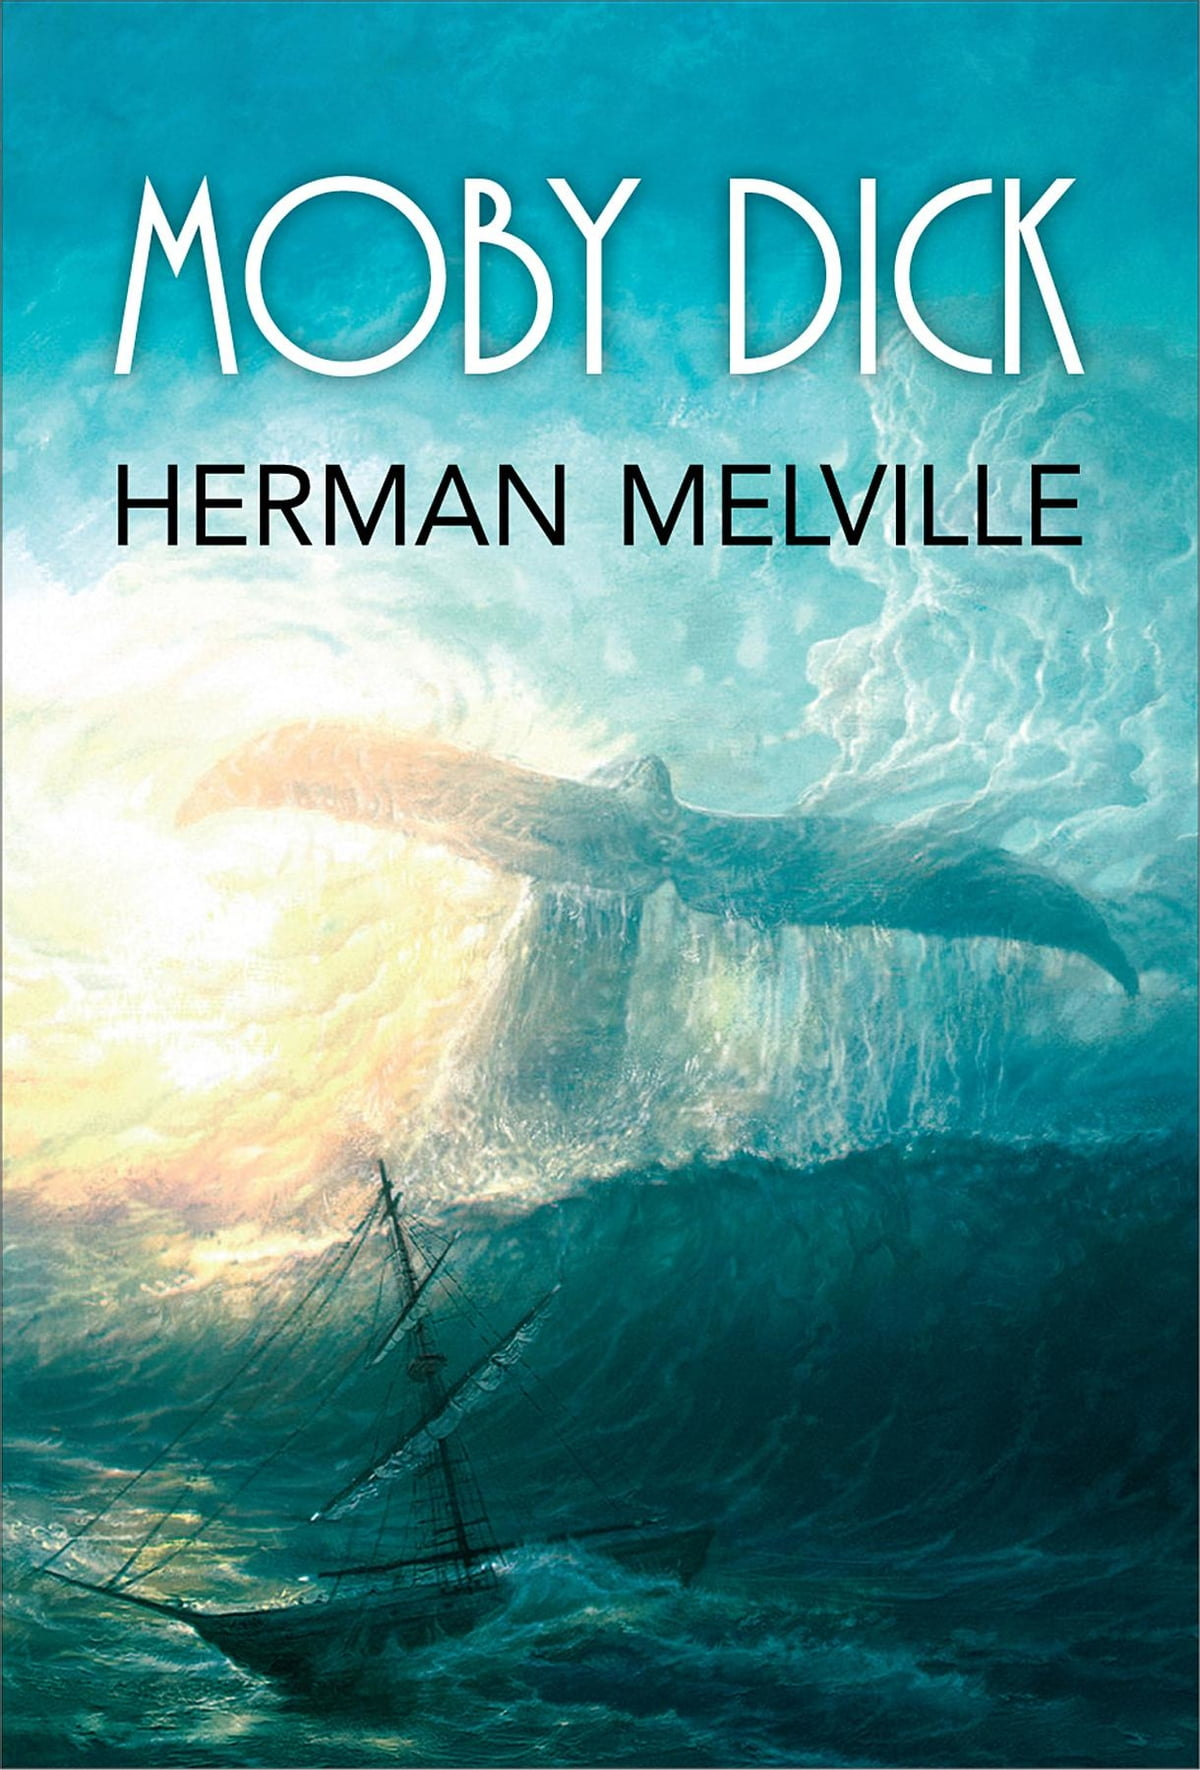 Moby Dick eBook by Herman Melville | Rakuten Kobo